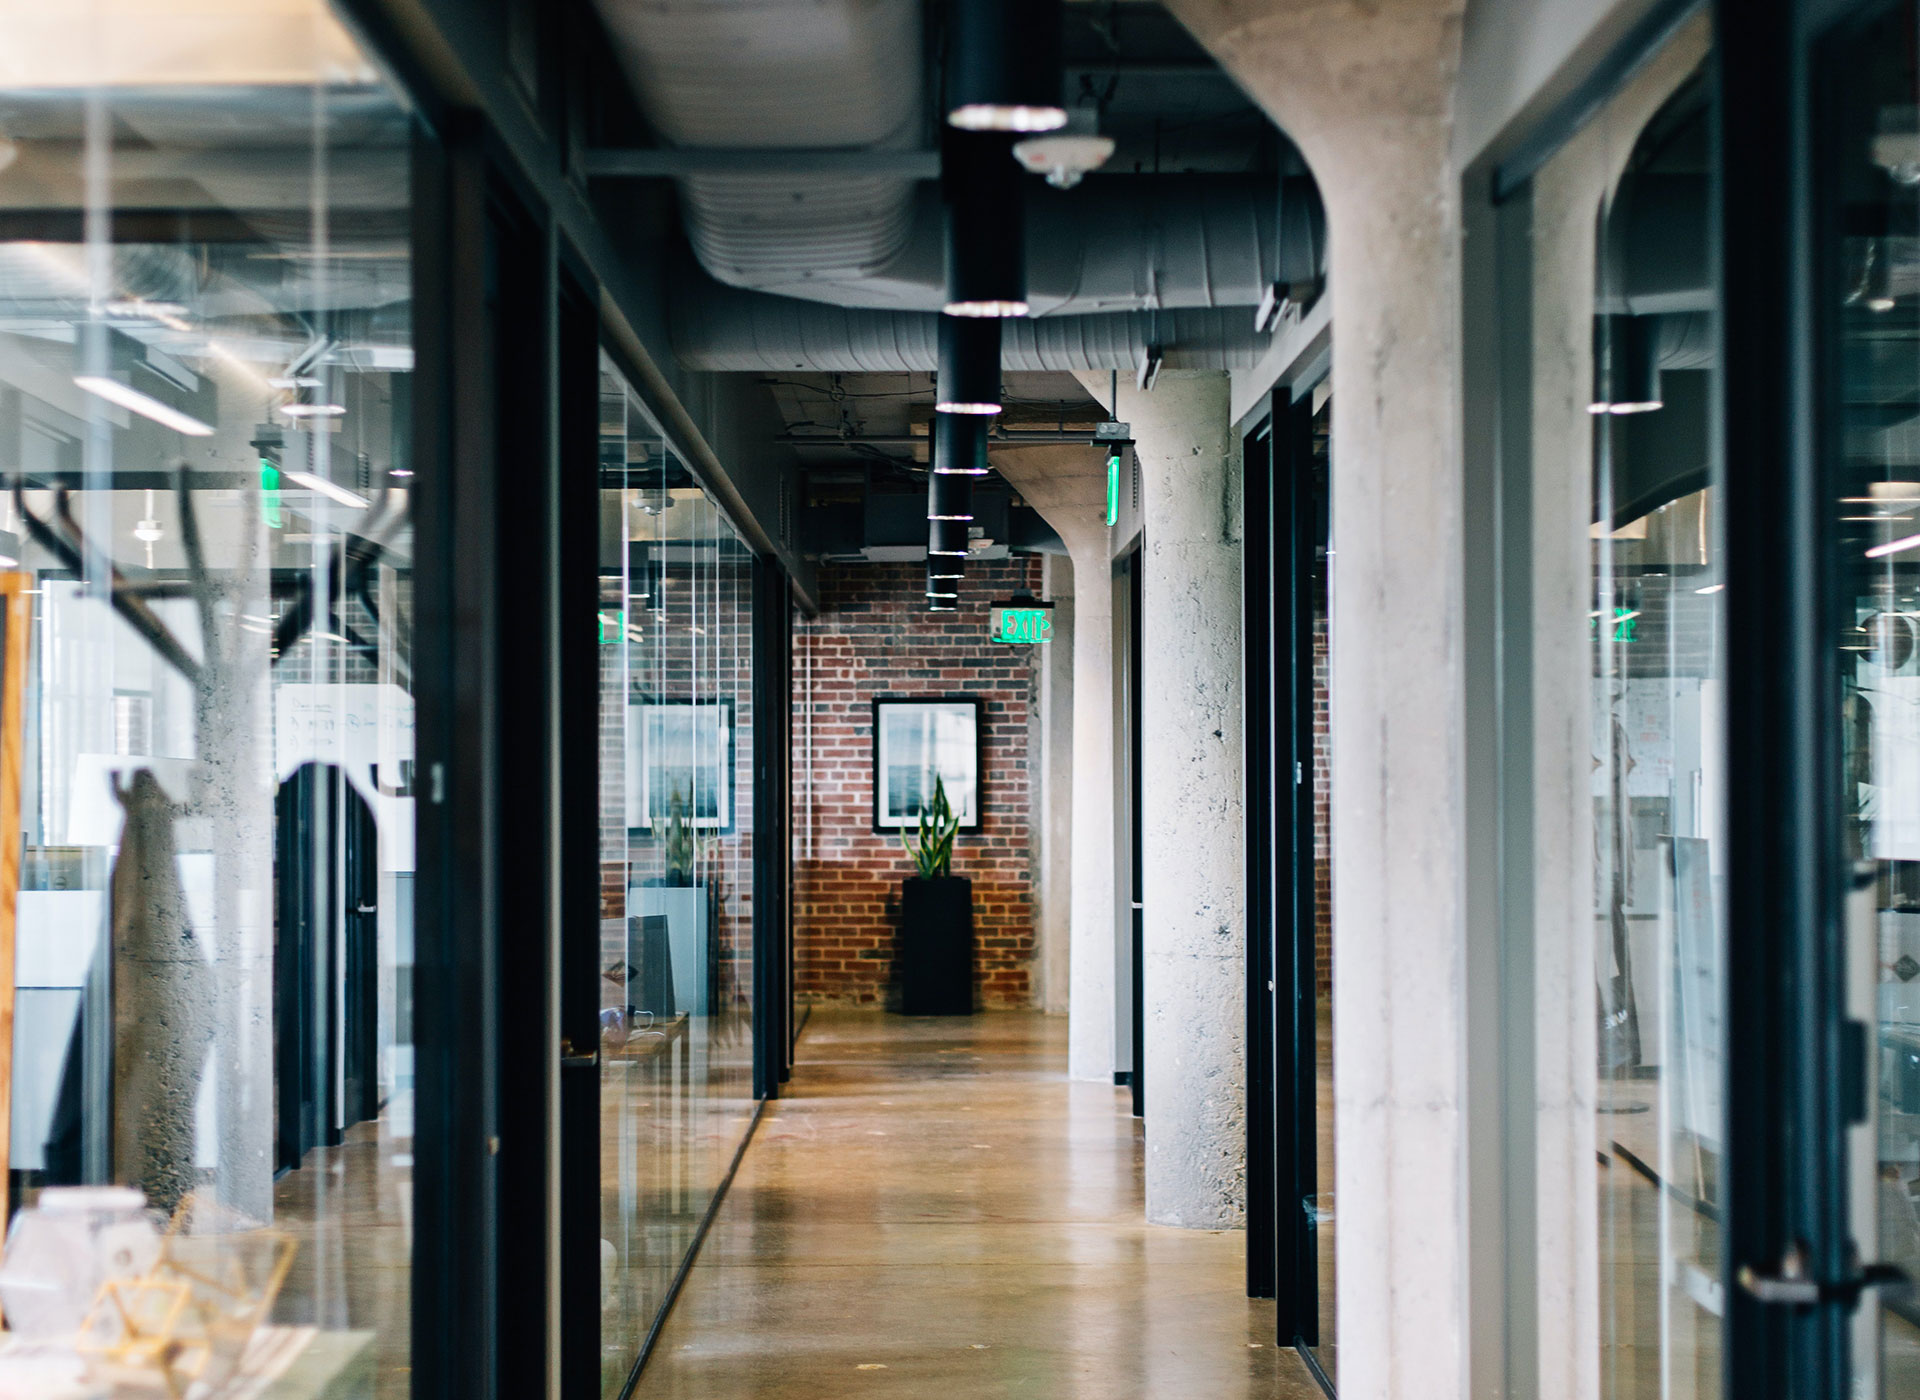 Virtual doors: Smart building technology to make the office hands-free